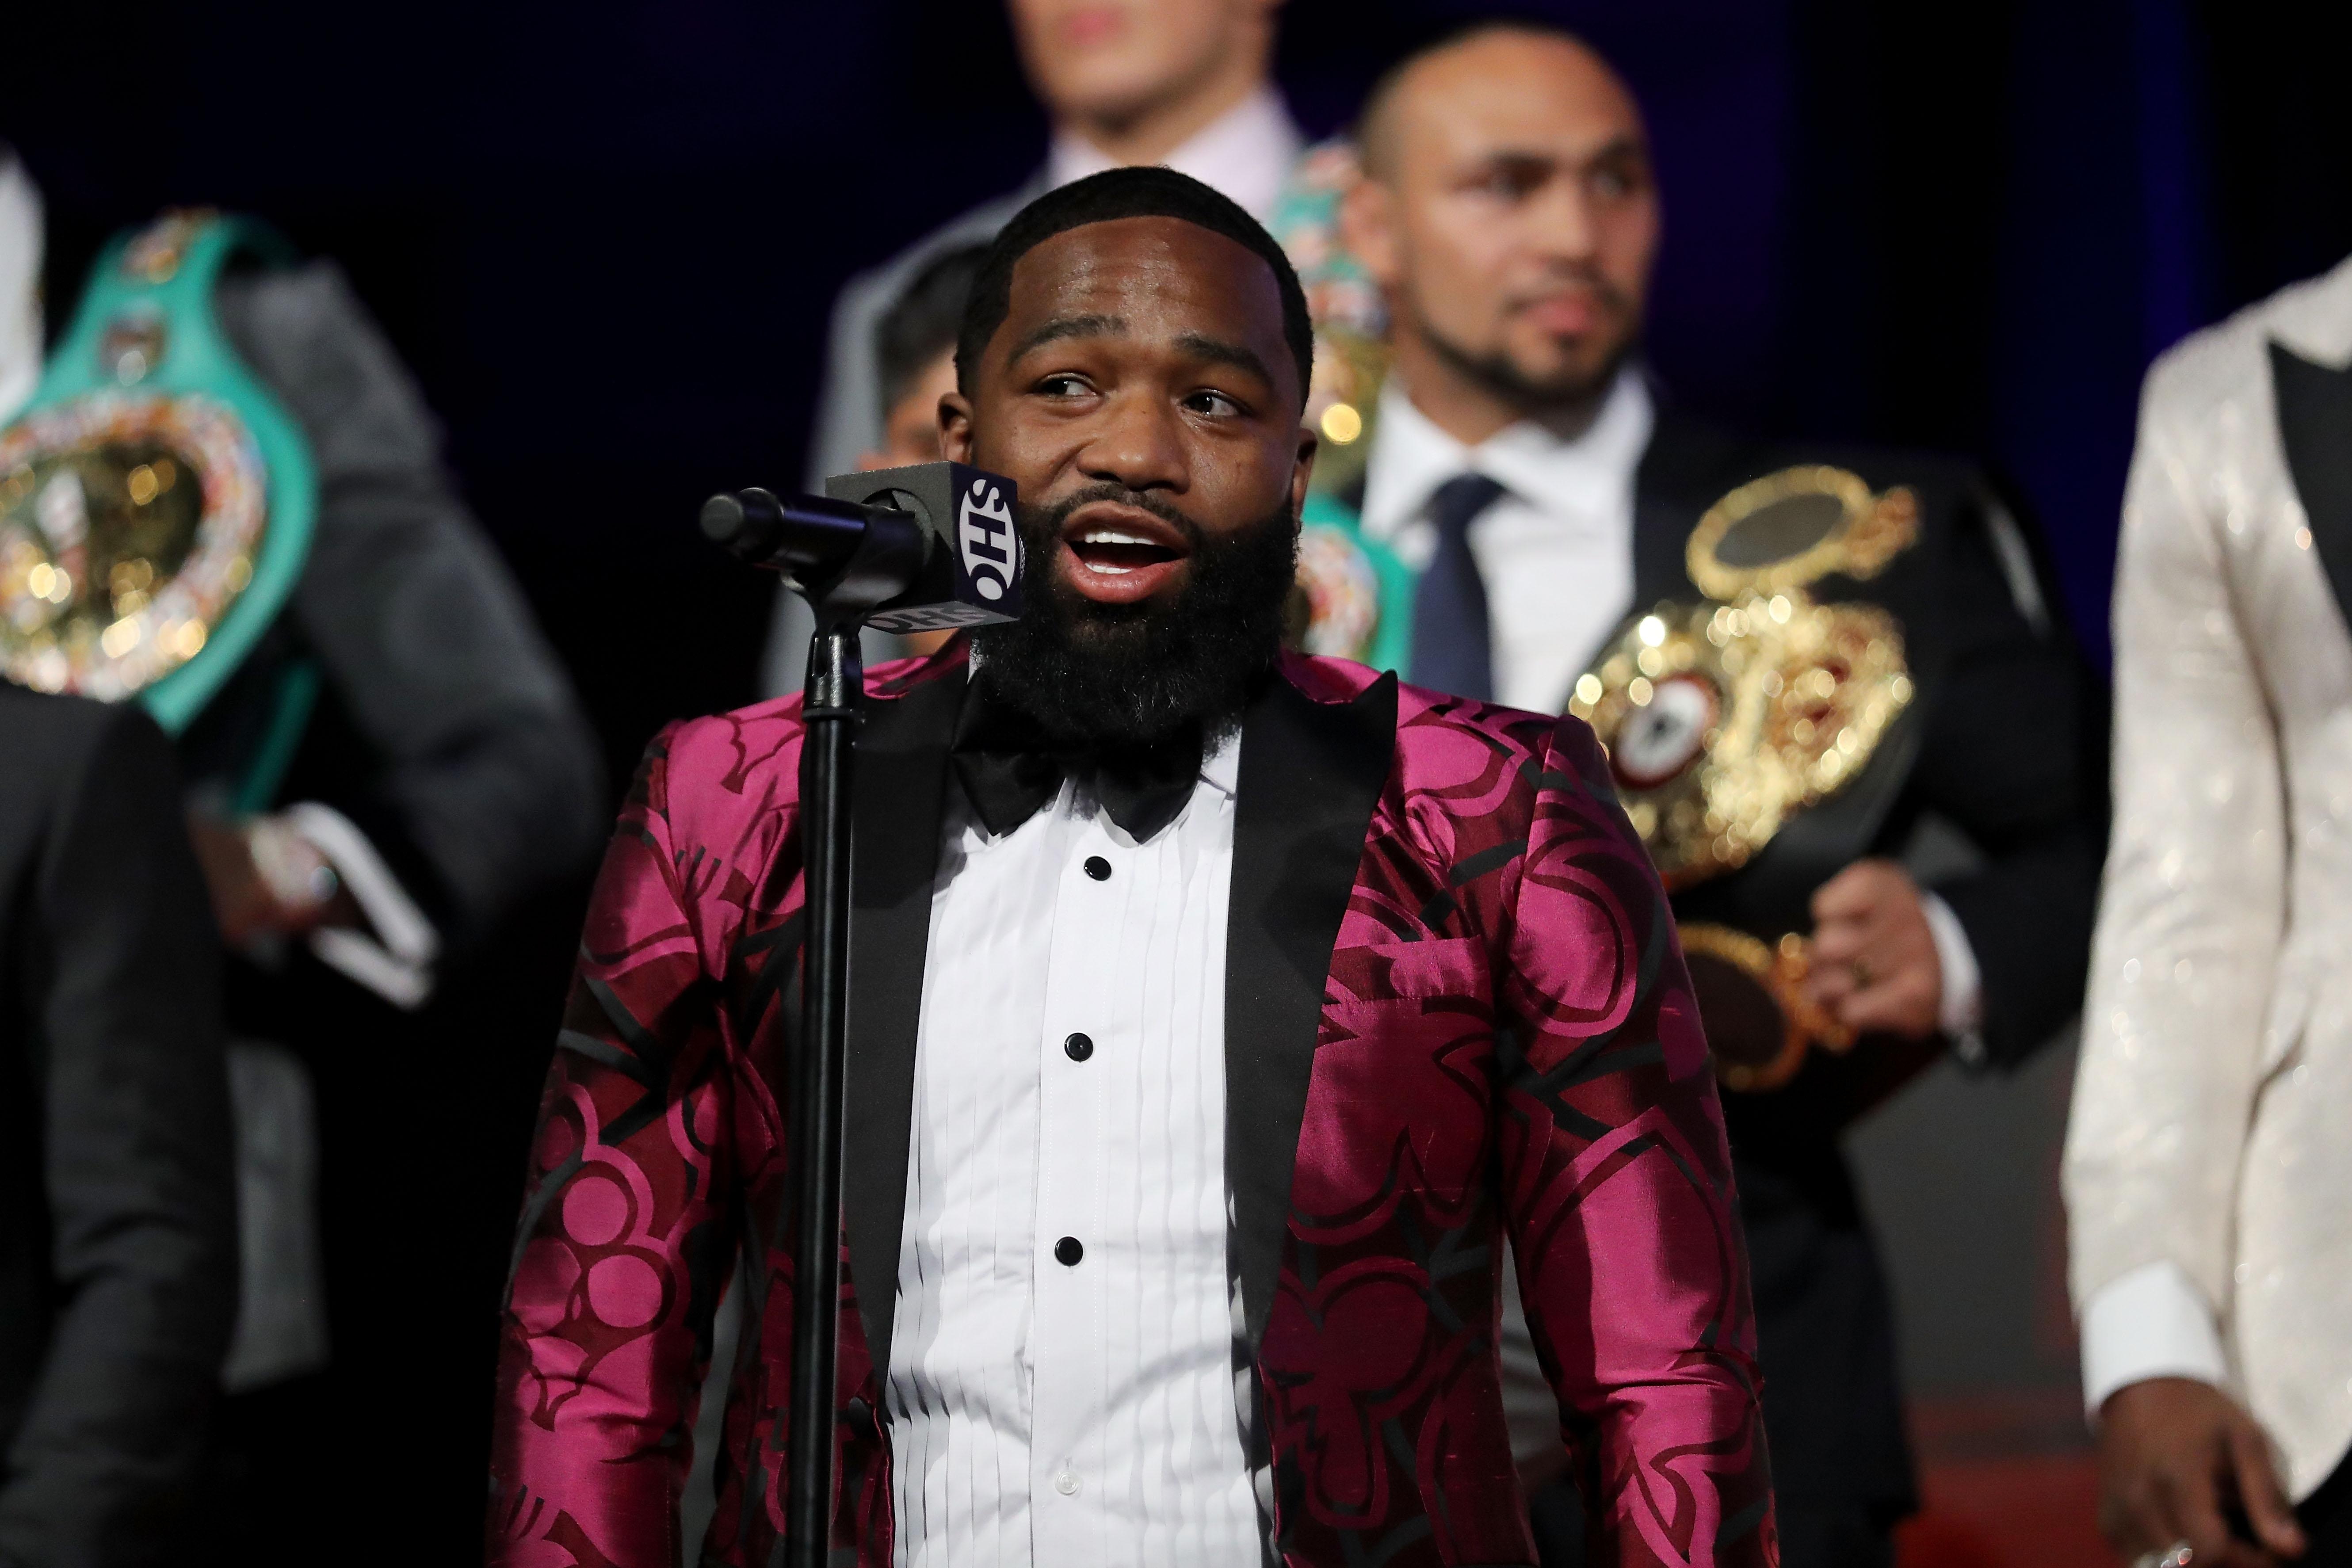 Broner arrested for Sexual Battery